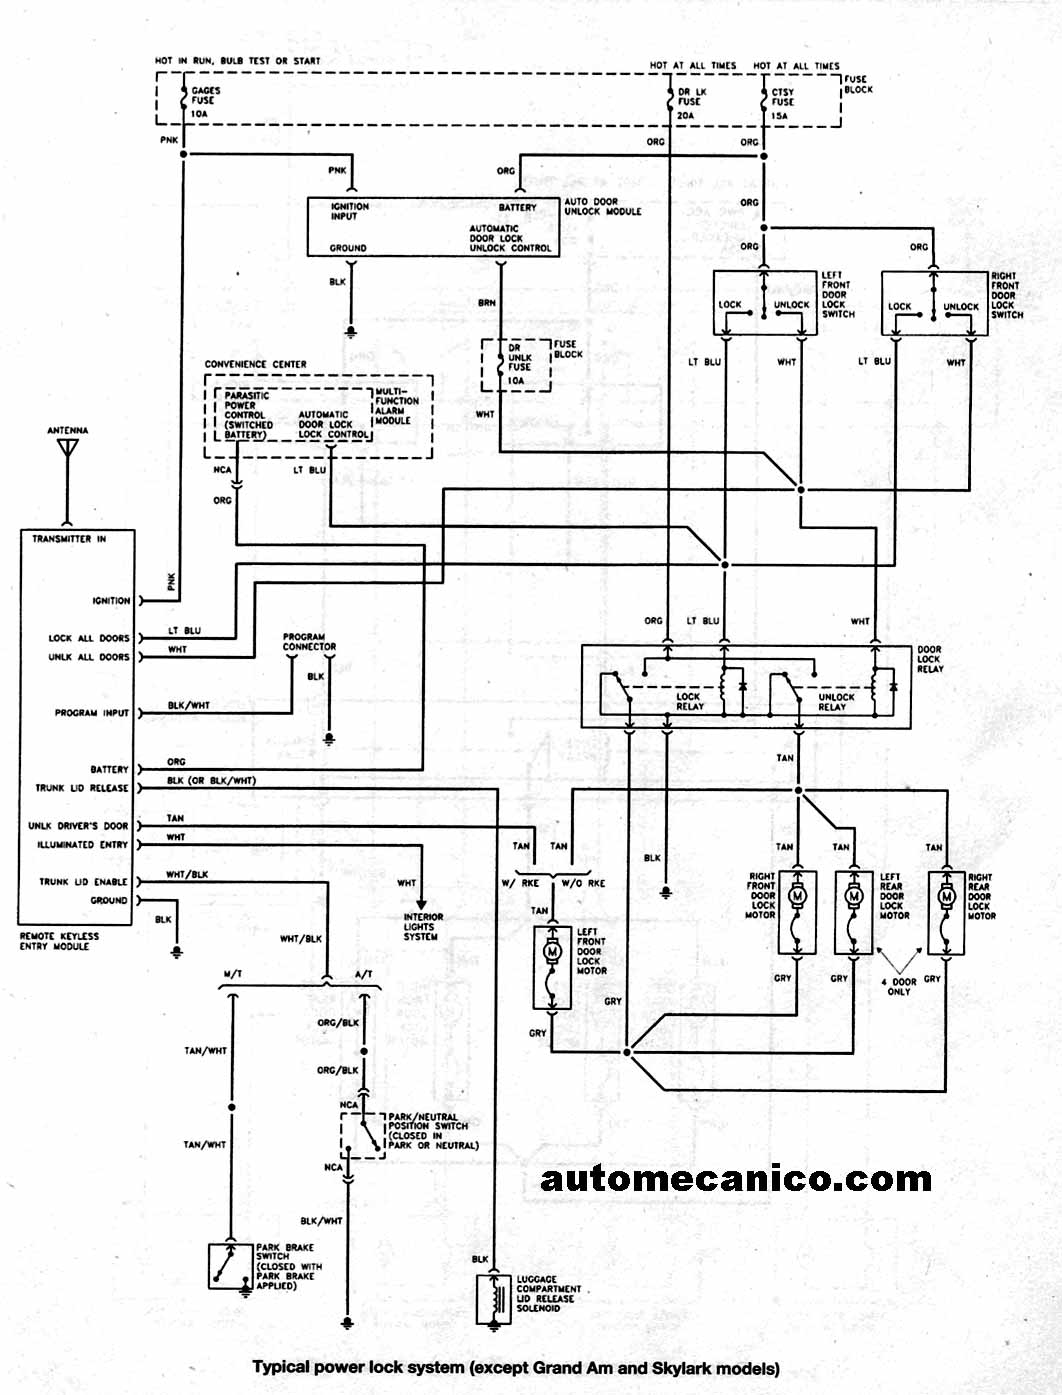 Diagramasgm on 2002 buick century